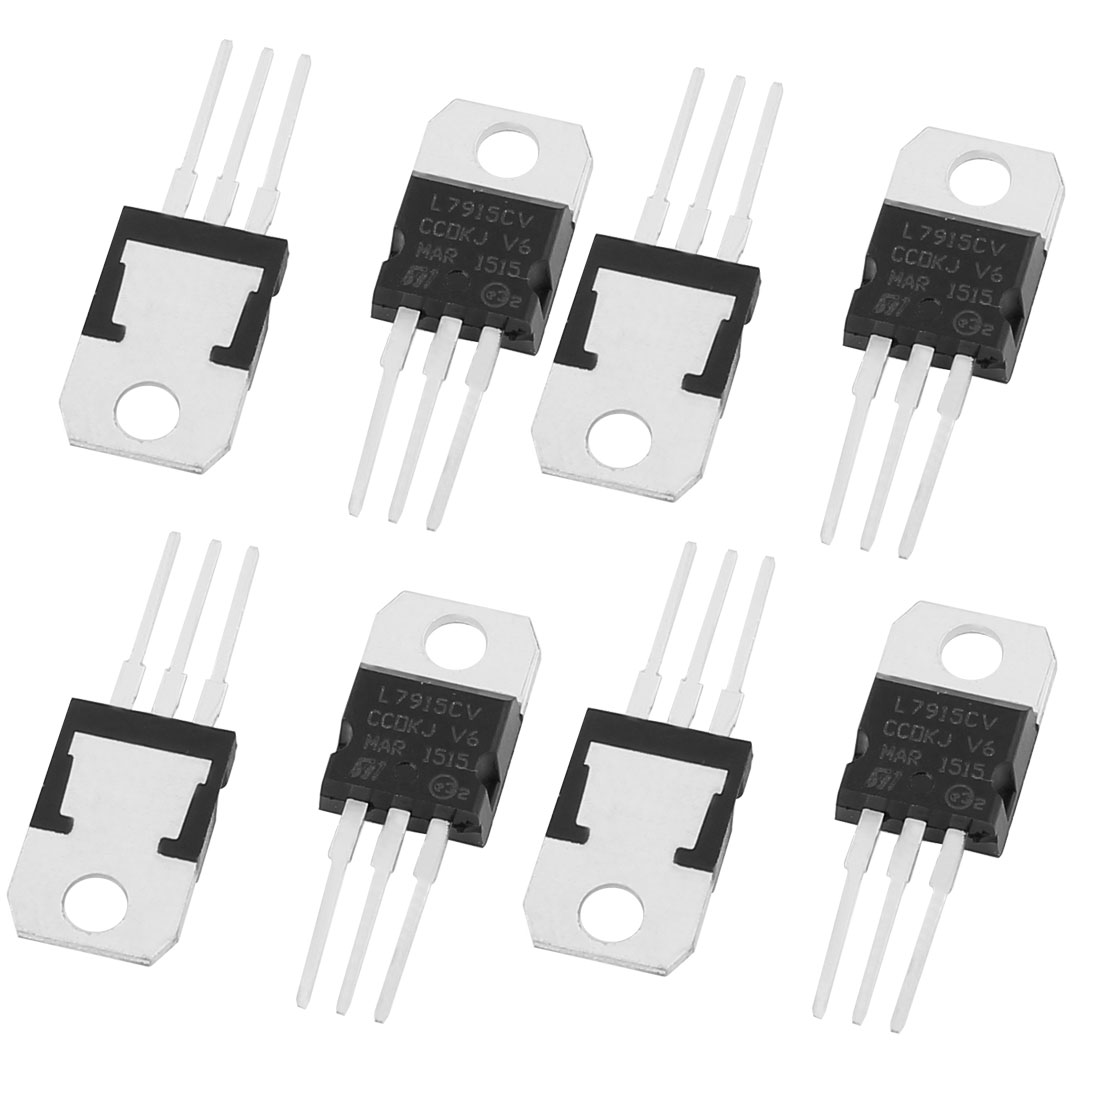 8 Pcs 15V 1A 3 Pin Terminals L7915CV Negative Voltage Regulator TO-220